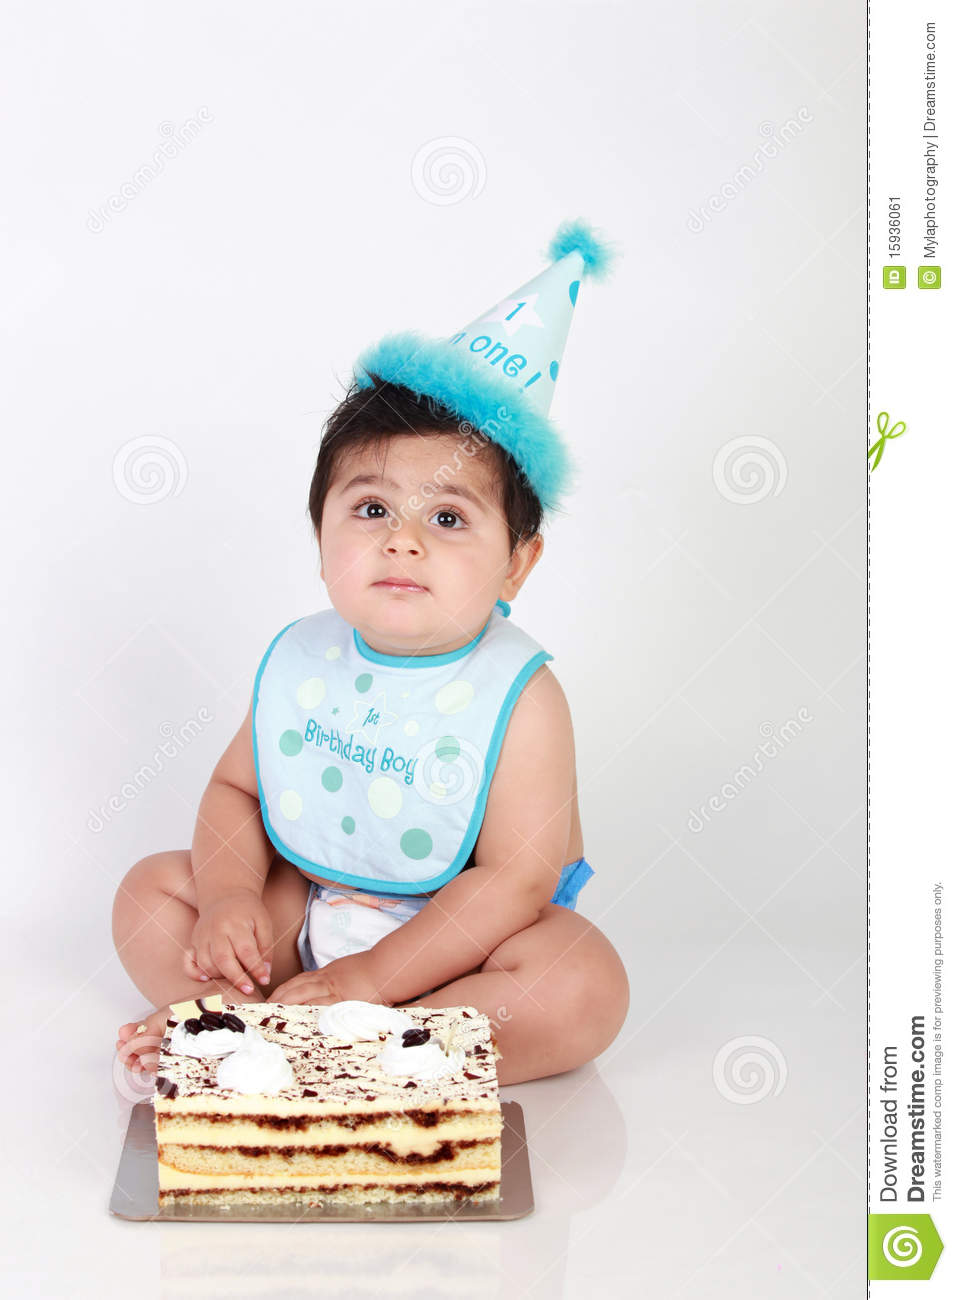 Birthday Baby Boy Stock Image Of Adorable Birth